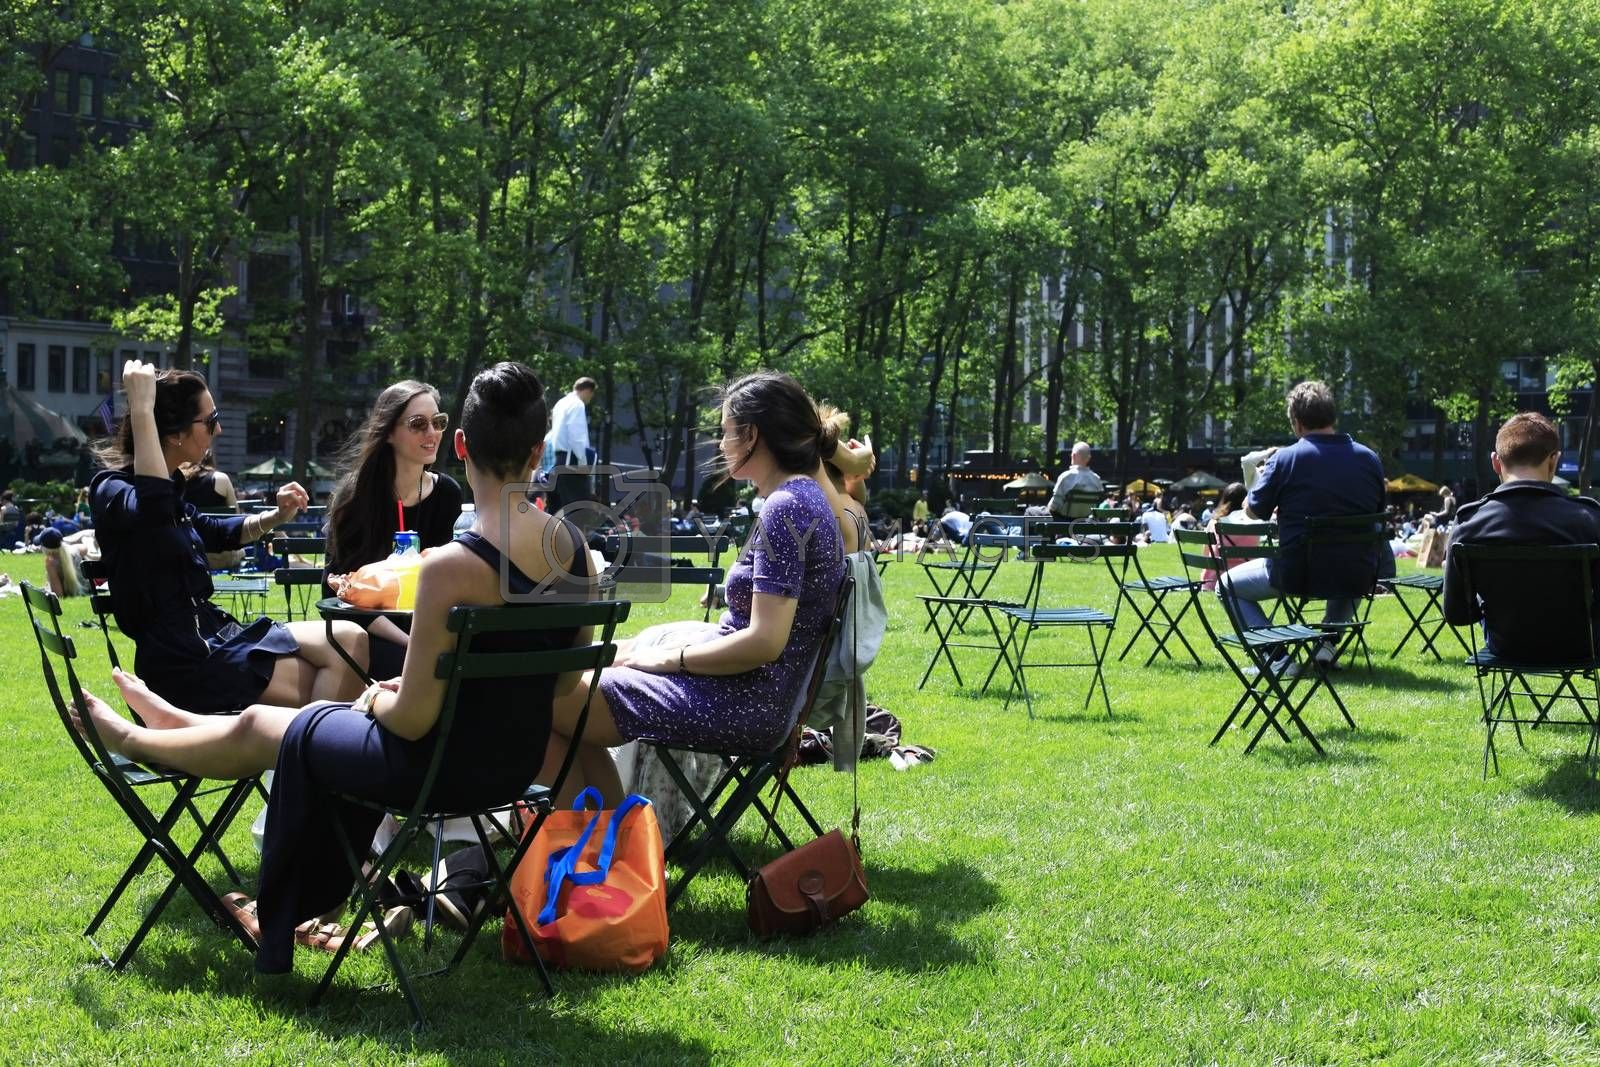 York City, NY, USA - May 16, 2013: People enjoying a nice day in Bryant Park on May 16, 2013 in New York City, NY. Bryant Park is a 9,603 acre privately managed park in the center of Manhattan.